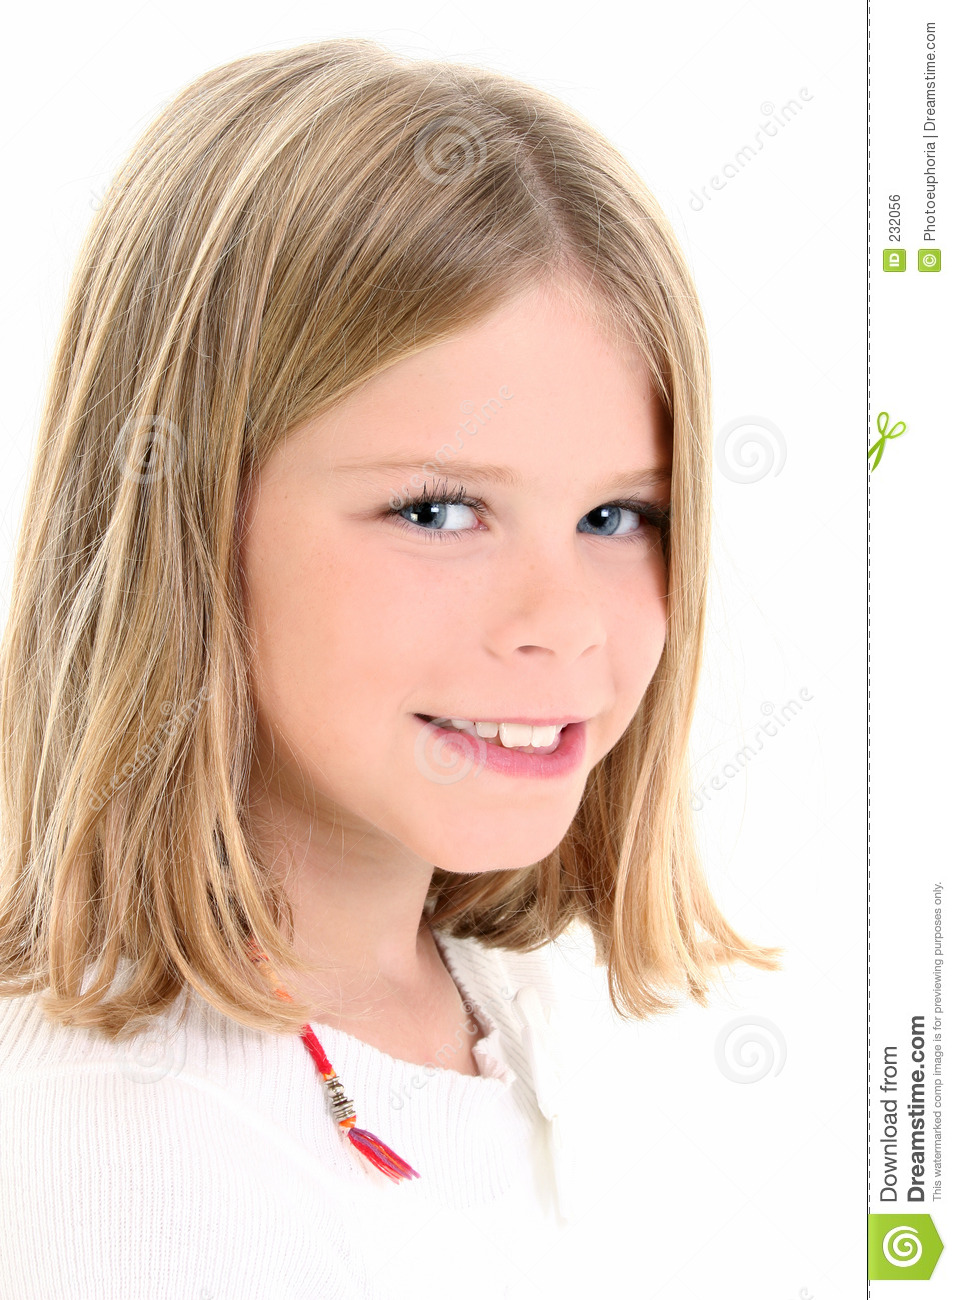 stock images of ` Close Up of Beautiful 10 Year Old American Girl